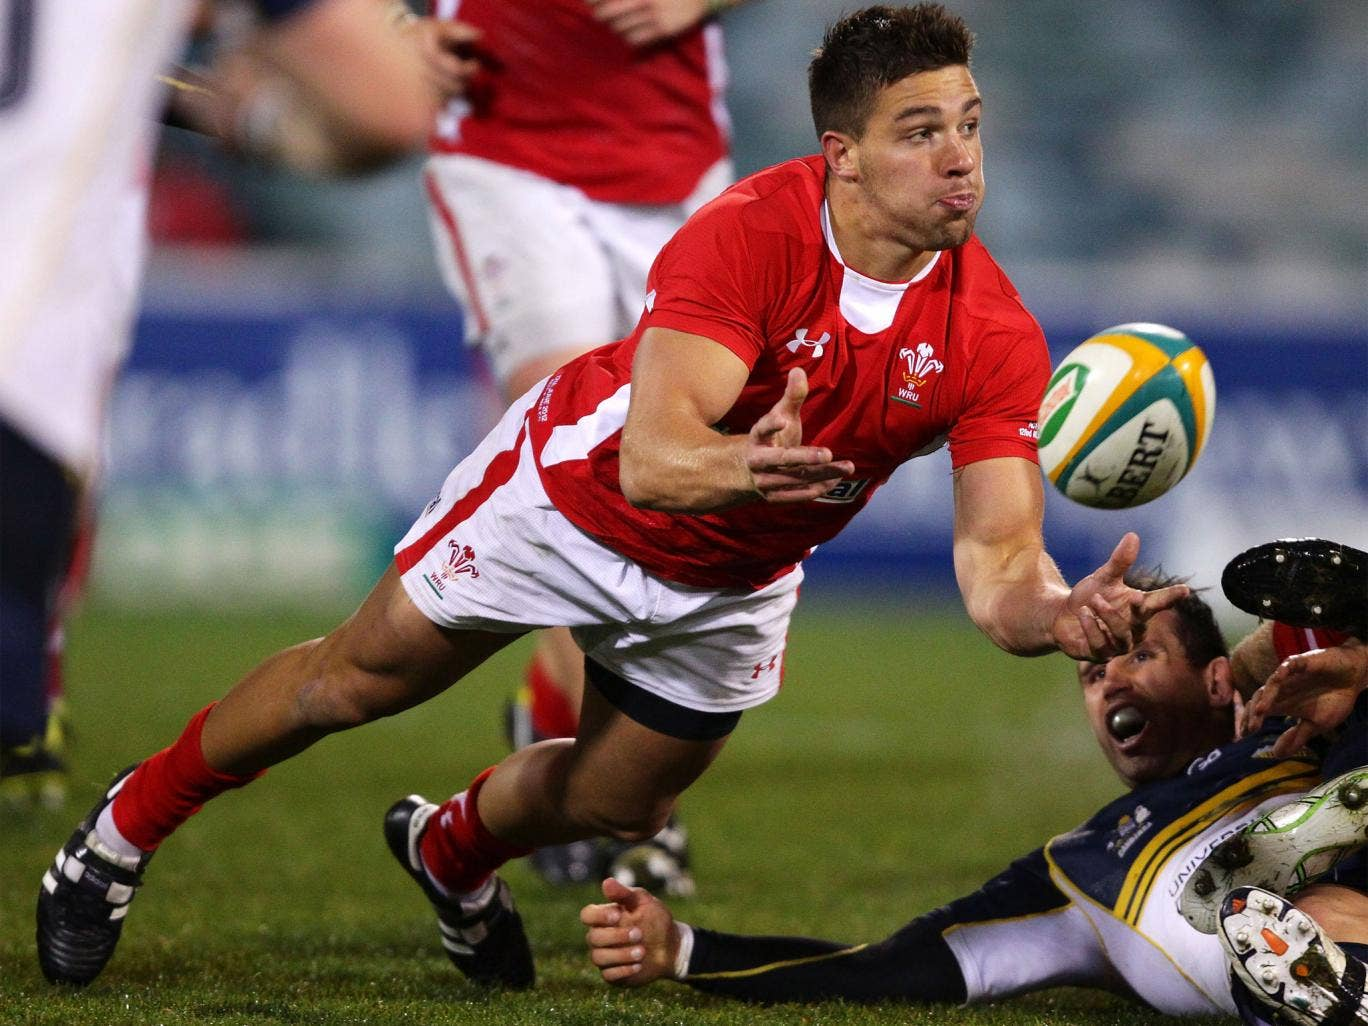 Rhys Webb has overtaken Lloyd Williams in the race to be Wales' scrum-half